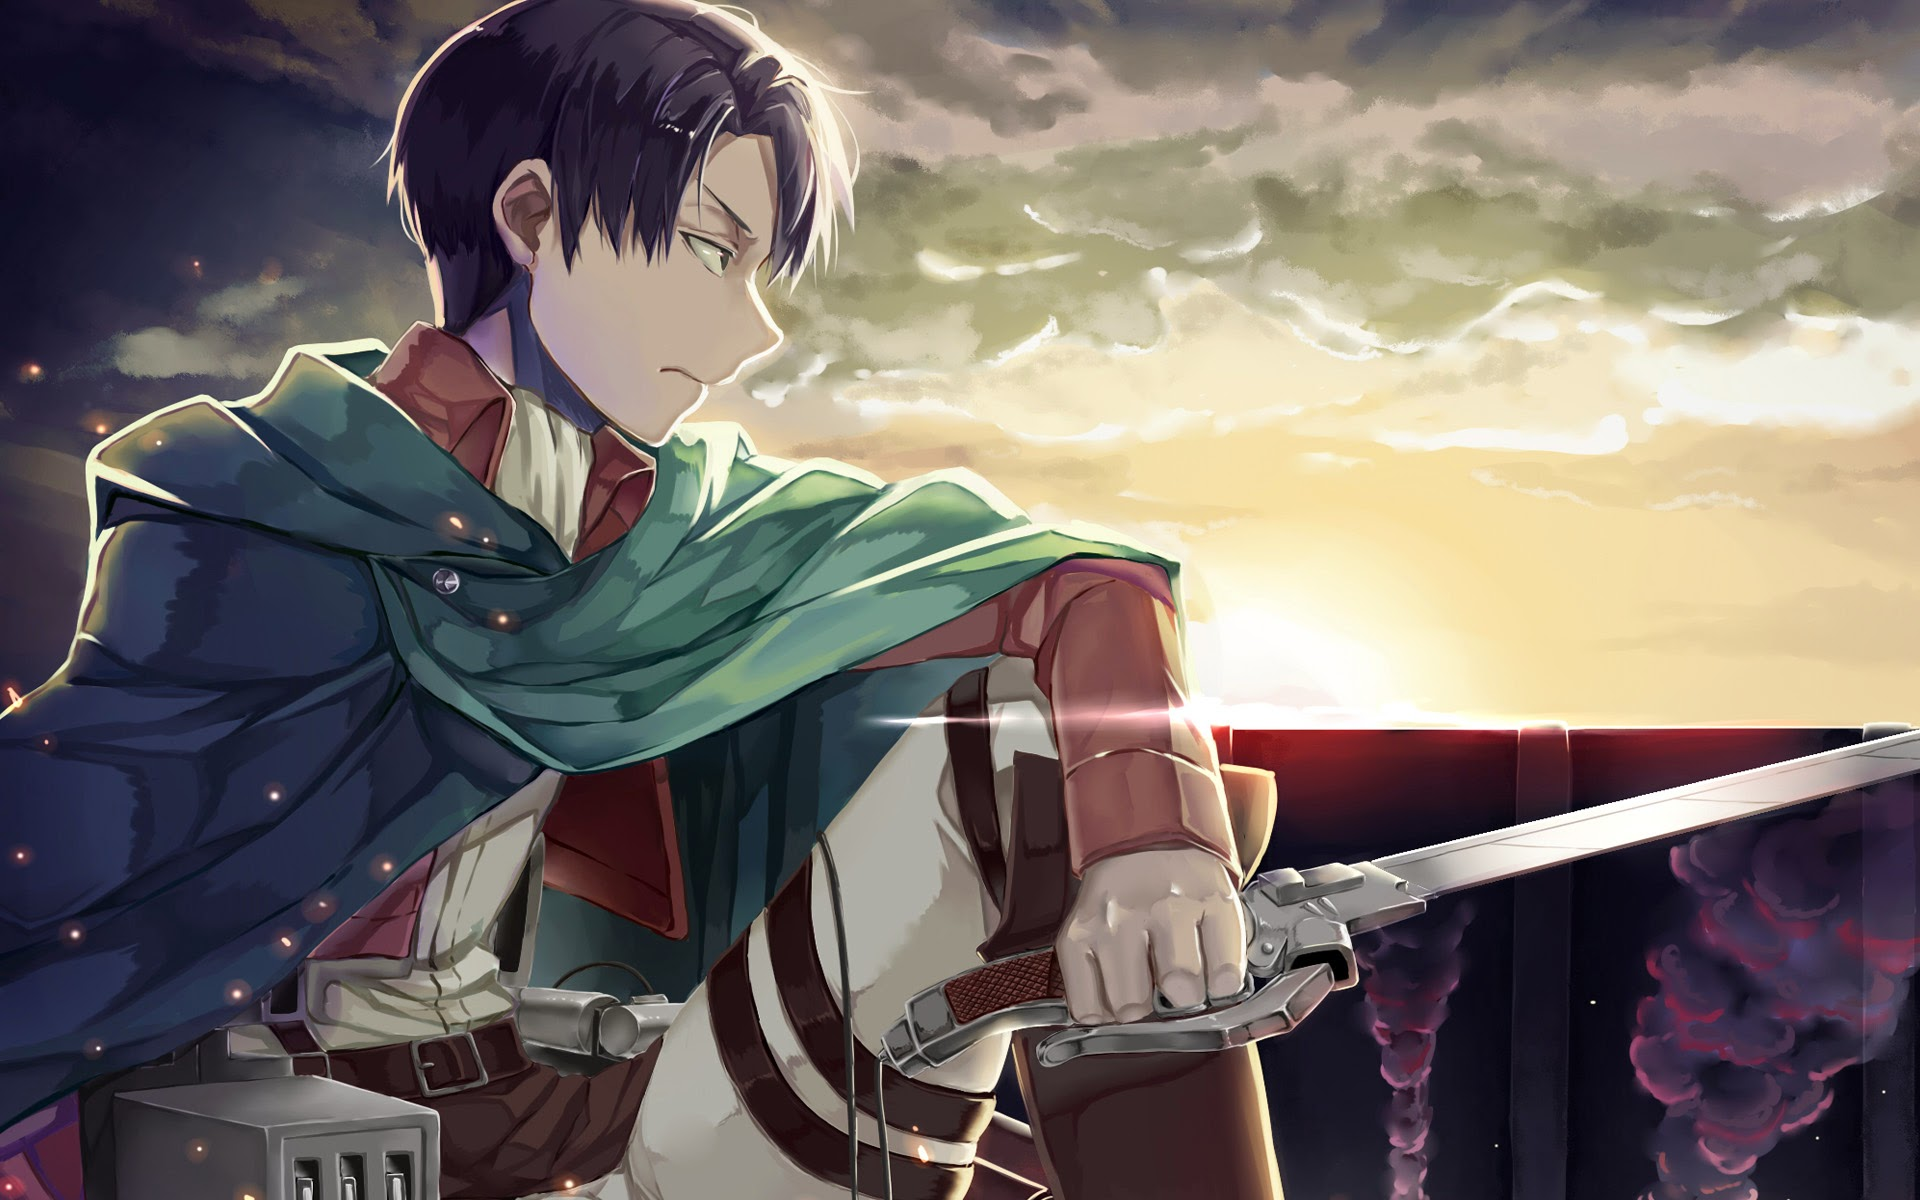 Levi Wallpaper Hd Aot 1920x1200 Download Hd Wallpaper Wallpapertip